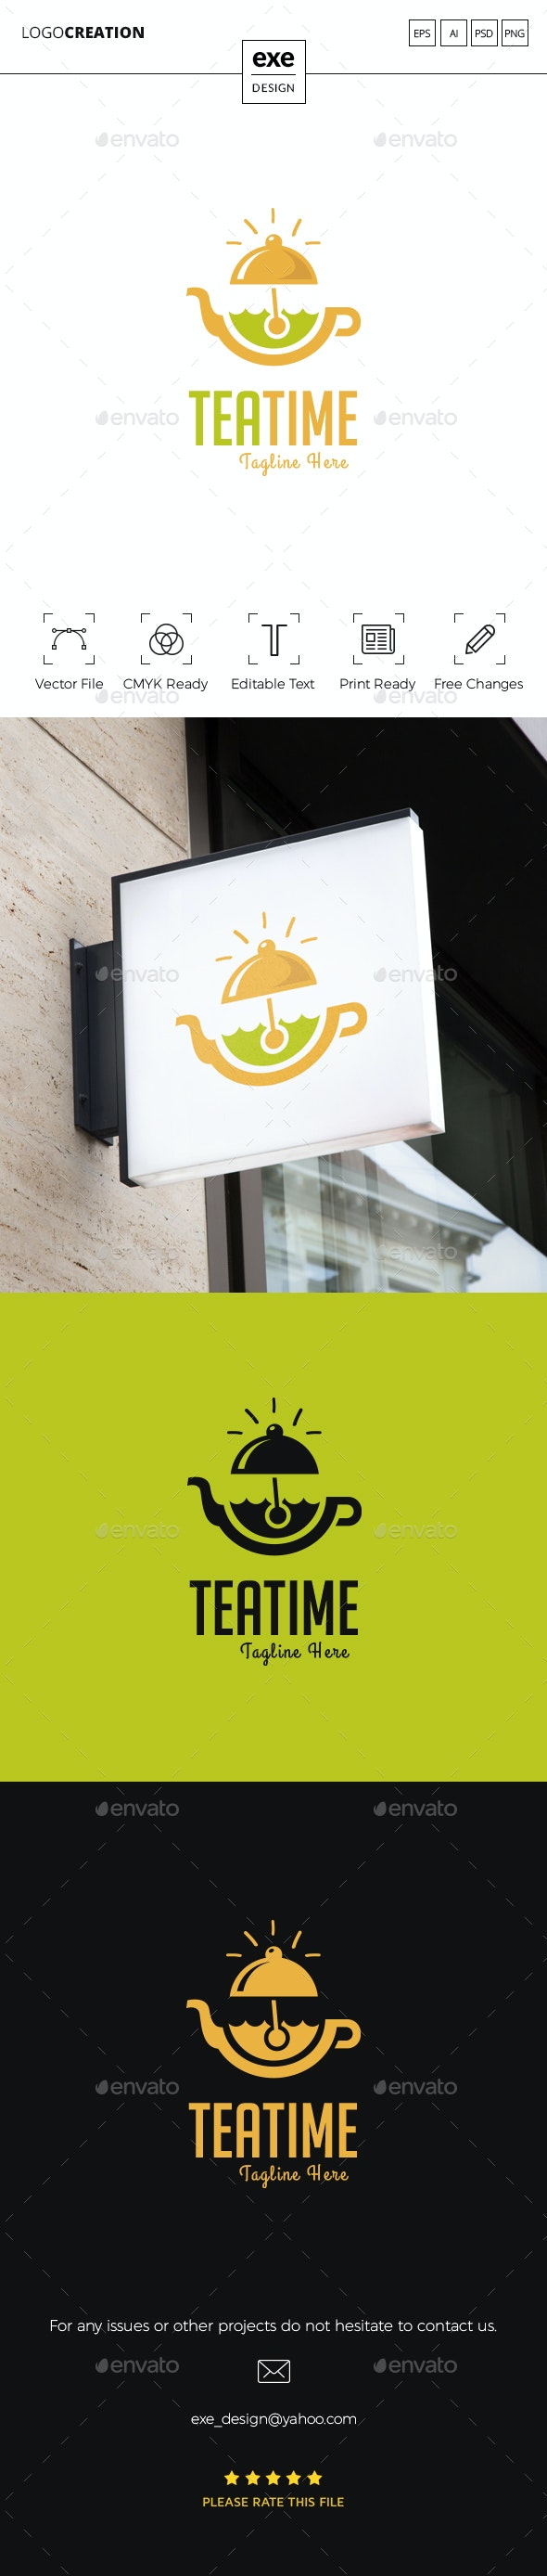 Tea Logo - Food Logo Templates